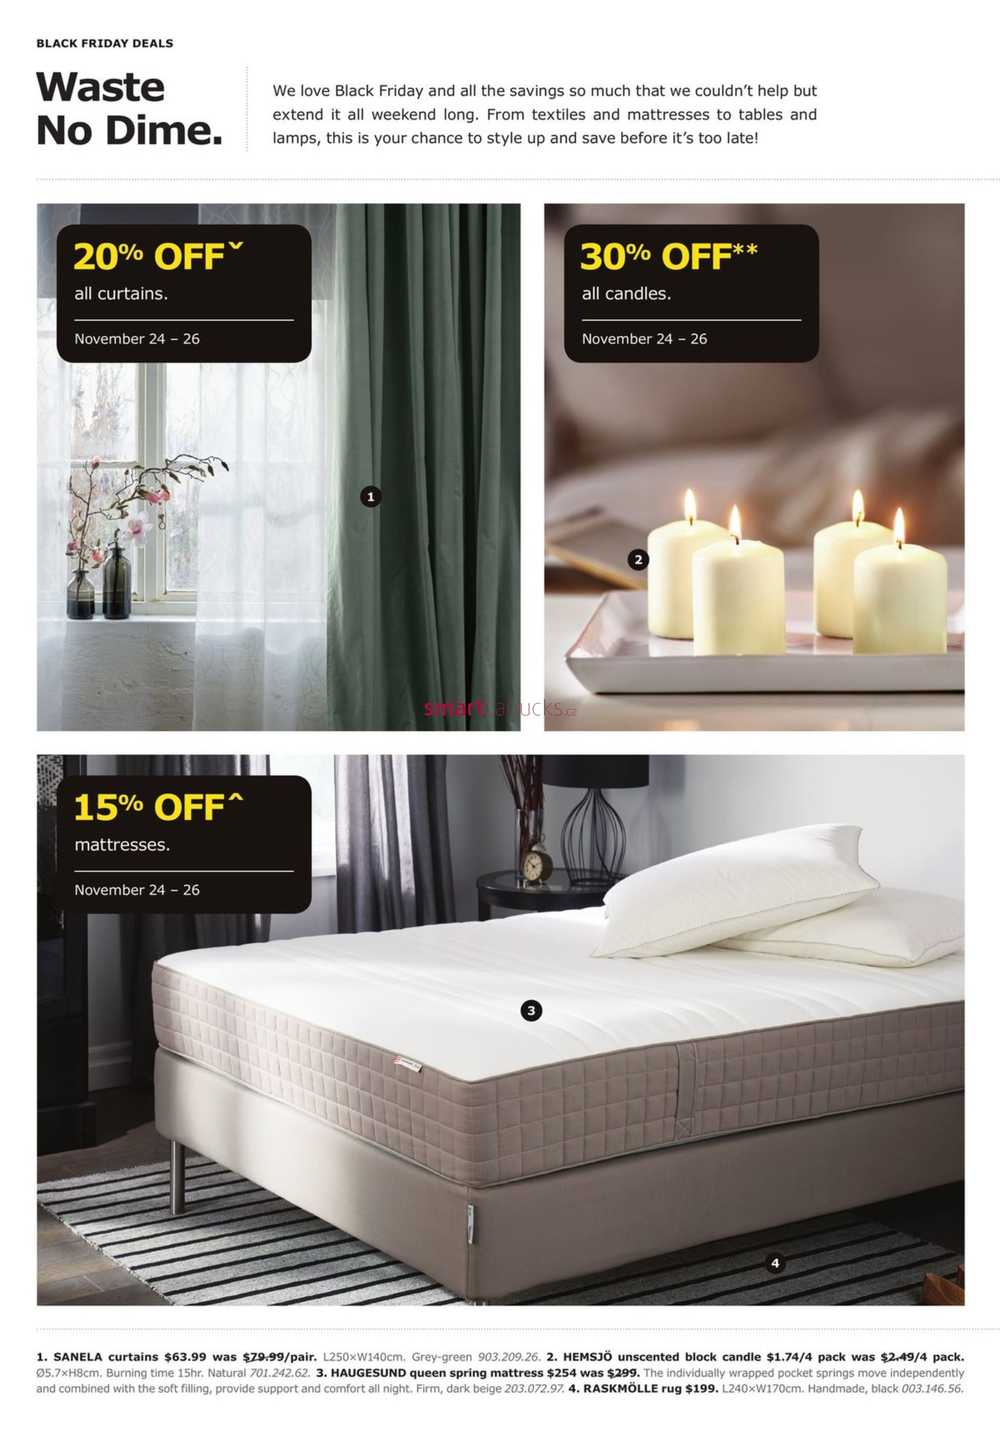 ikea black friday flyer nov 24 26. Black Bedroom Furniture Sets. Home Design Ideas